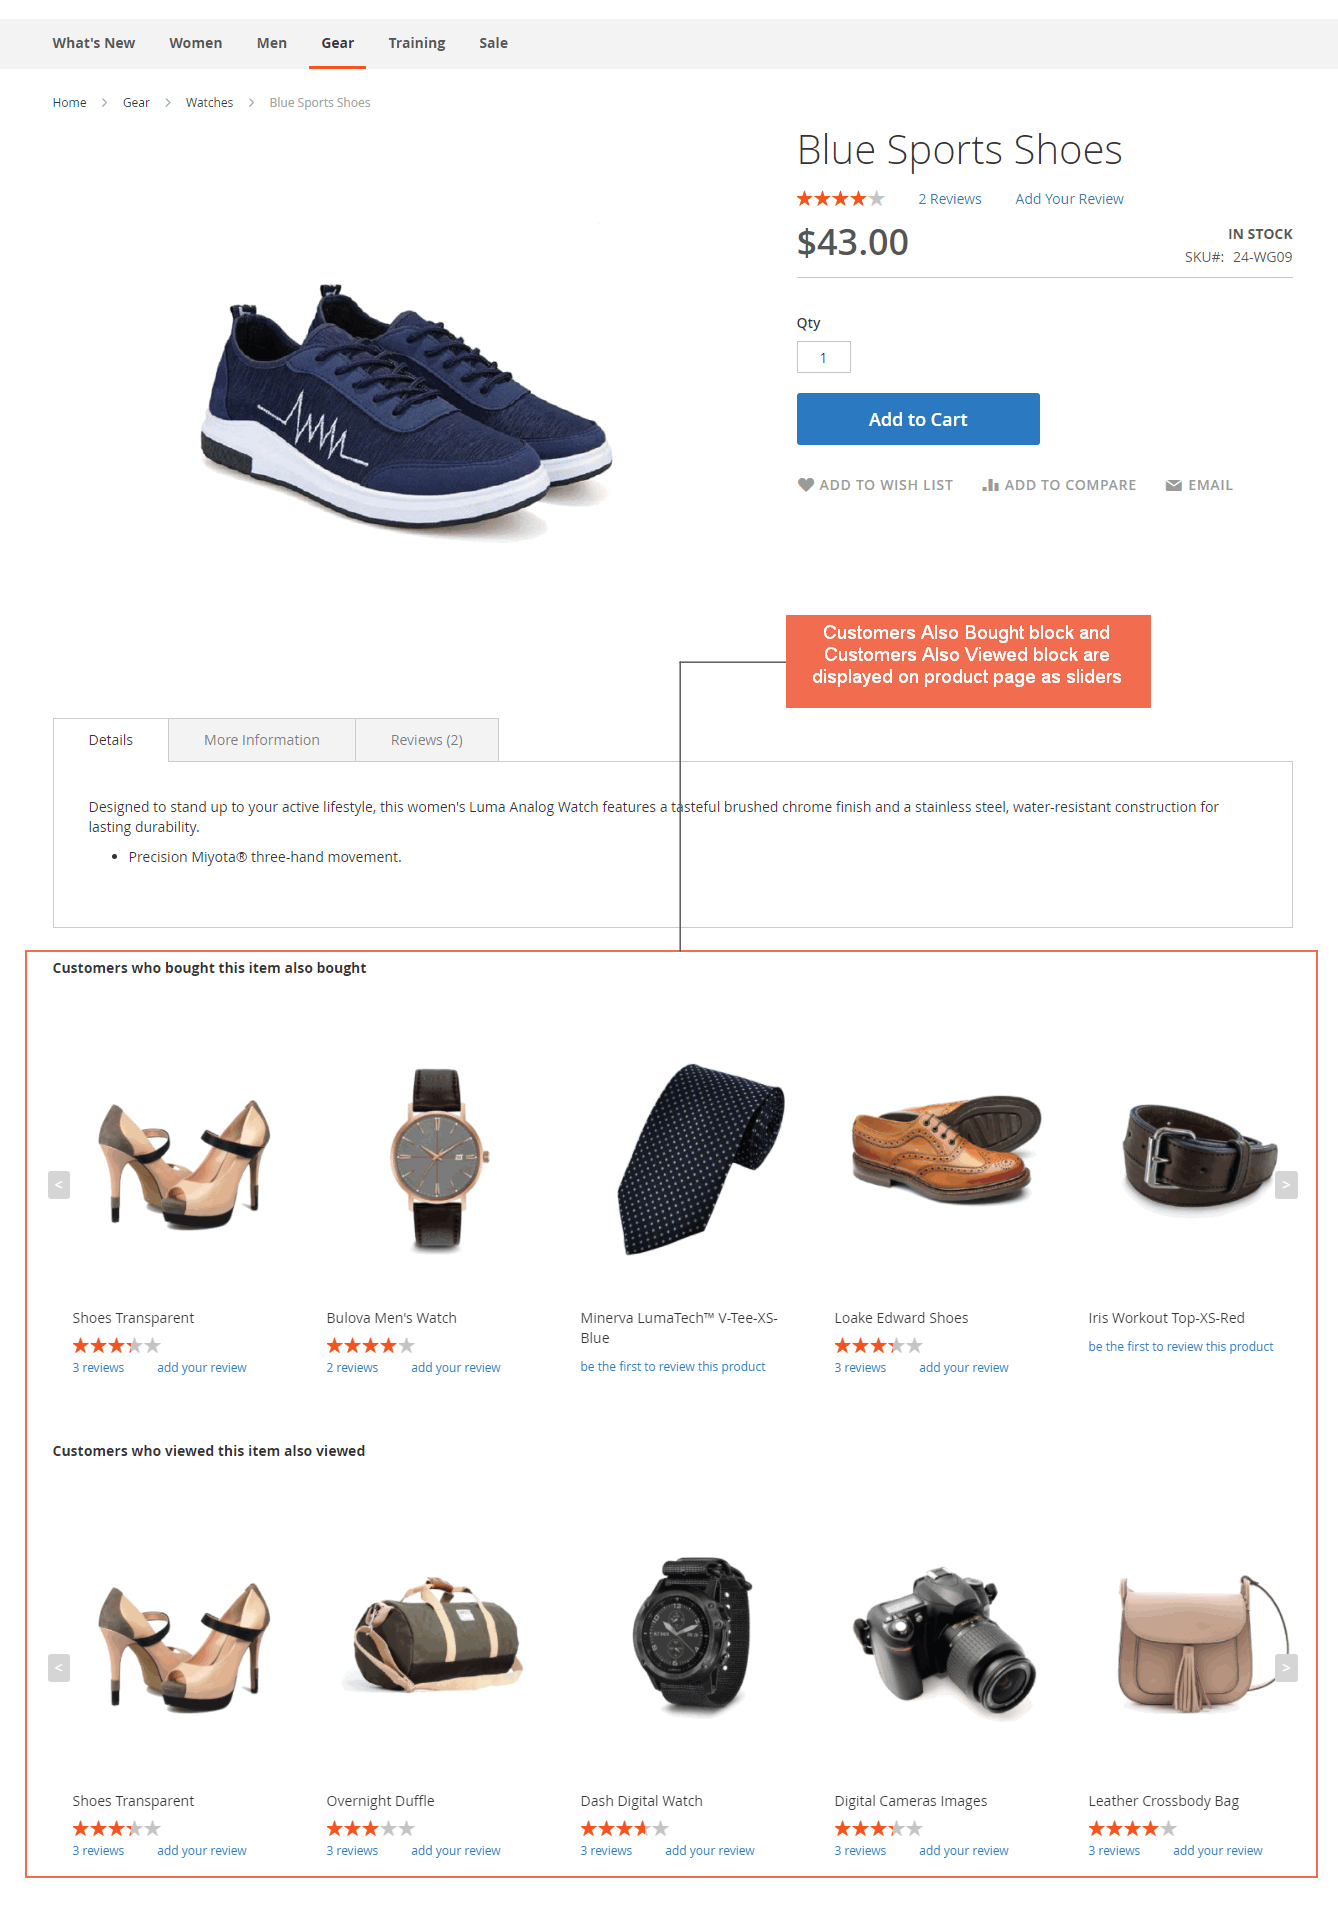 frontend-M2-customers-Also-Bought-Also-Viewed-block